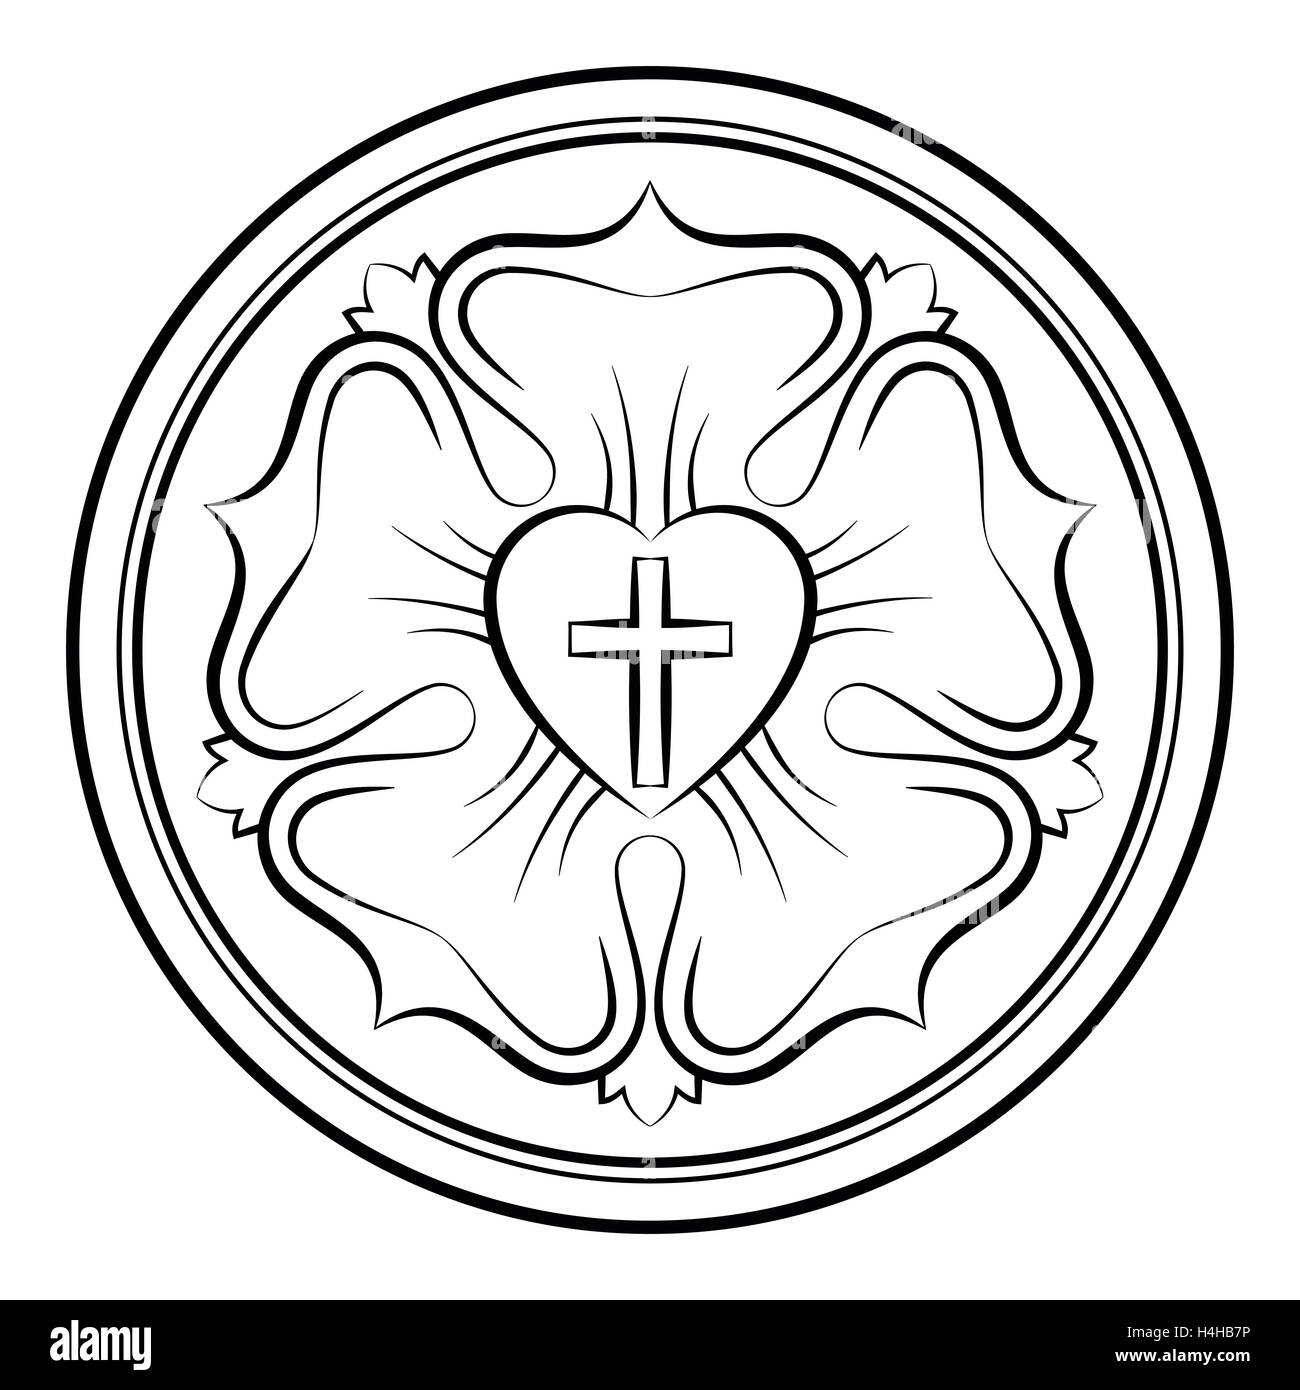 martin luther s seal coloring page luther rose monochrome calligraphic illustration also